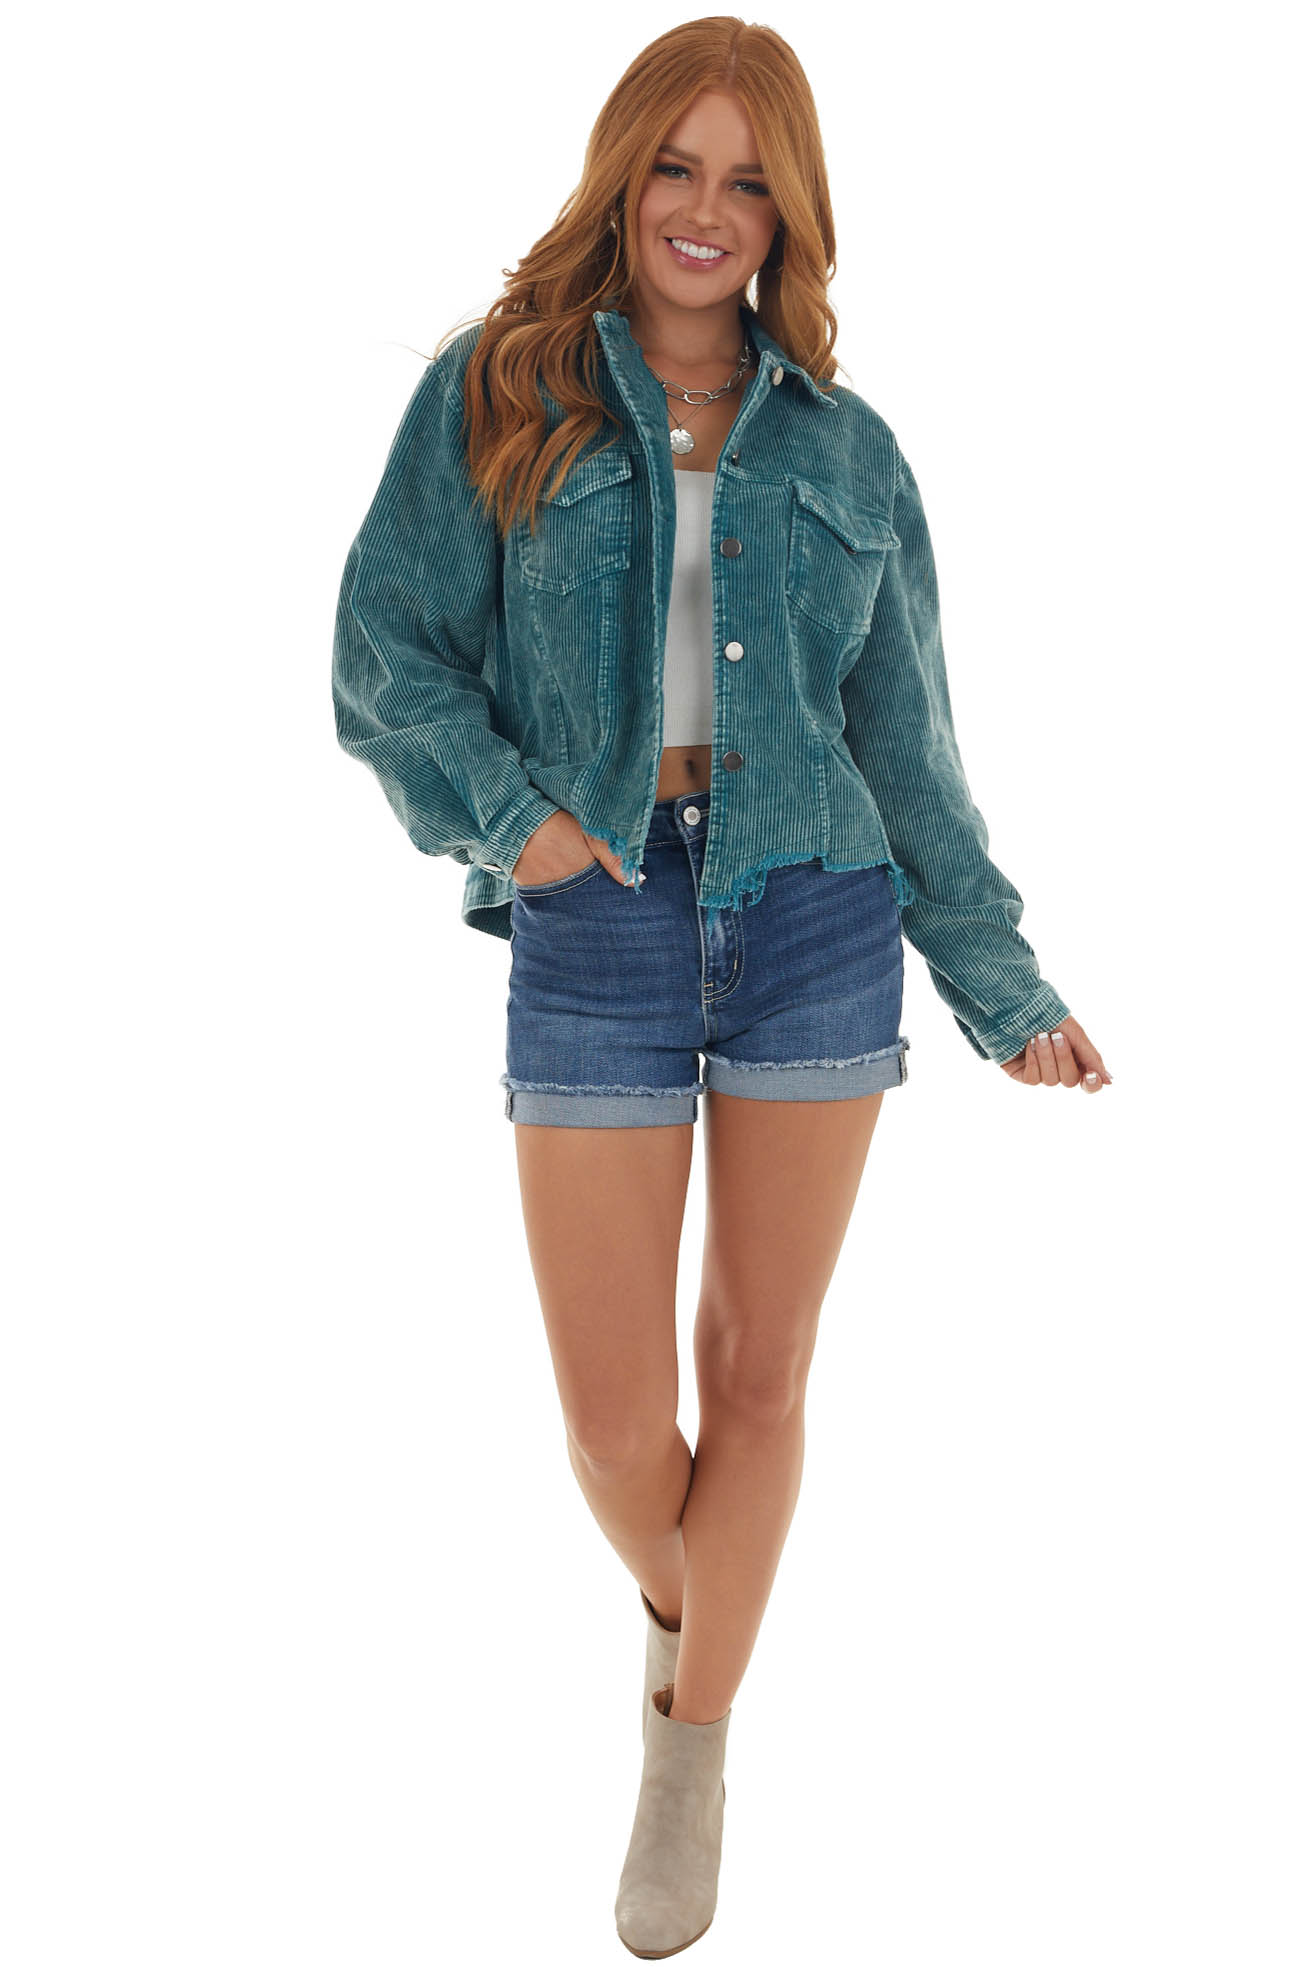 Sea Blue Corduroy Distressed Button Up Jacket